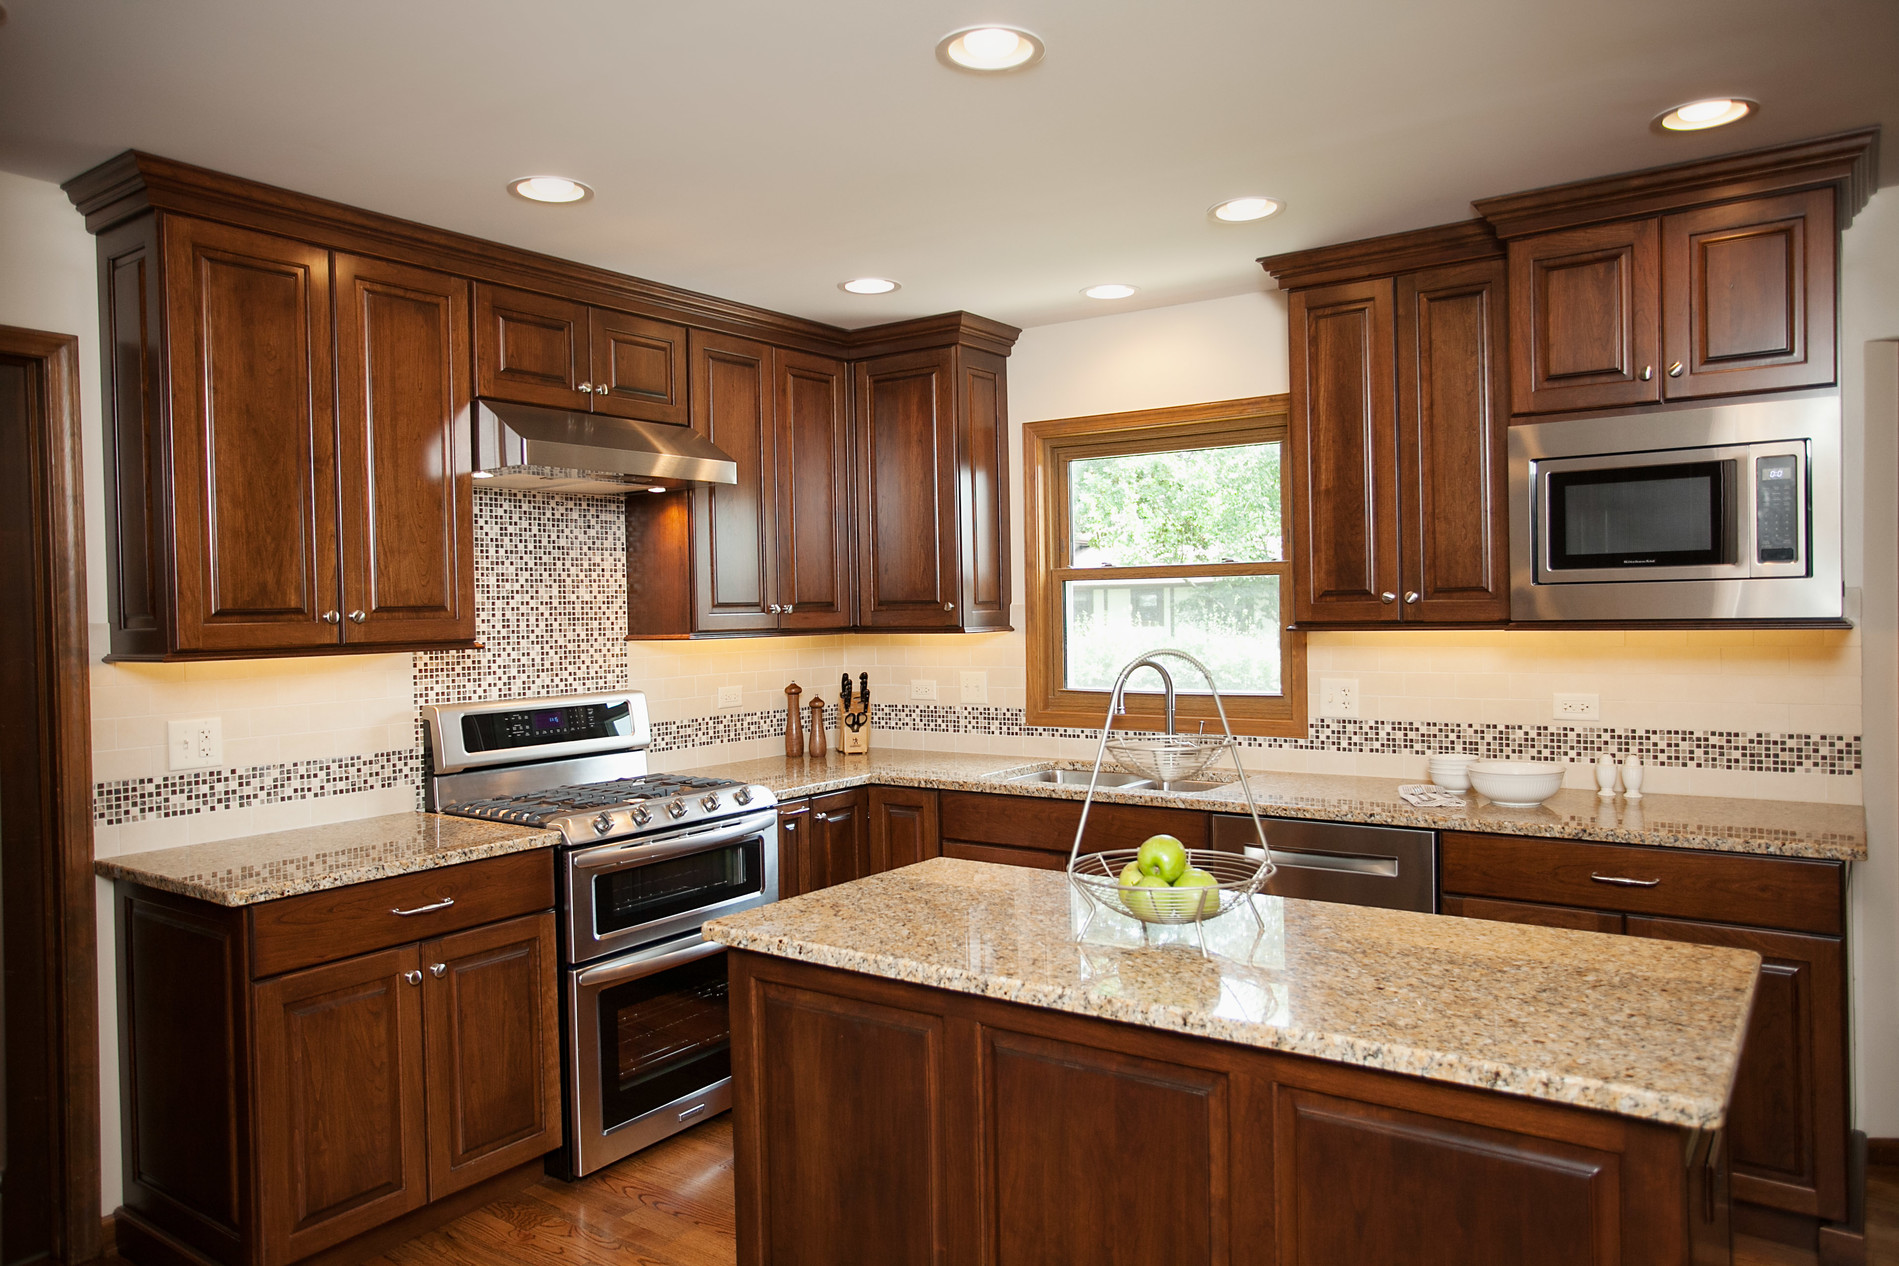 Uncategorized Chinese Kitchen Design tempting traditional river oak cabinetry design light toned granite counter tops porcelain back splash tile and accent with glass stone add stylish finishing touches to this traditional